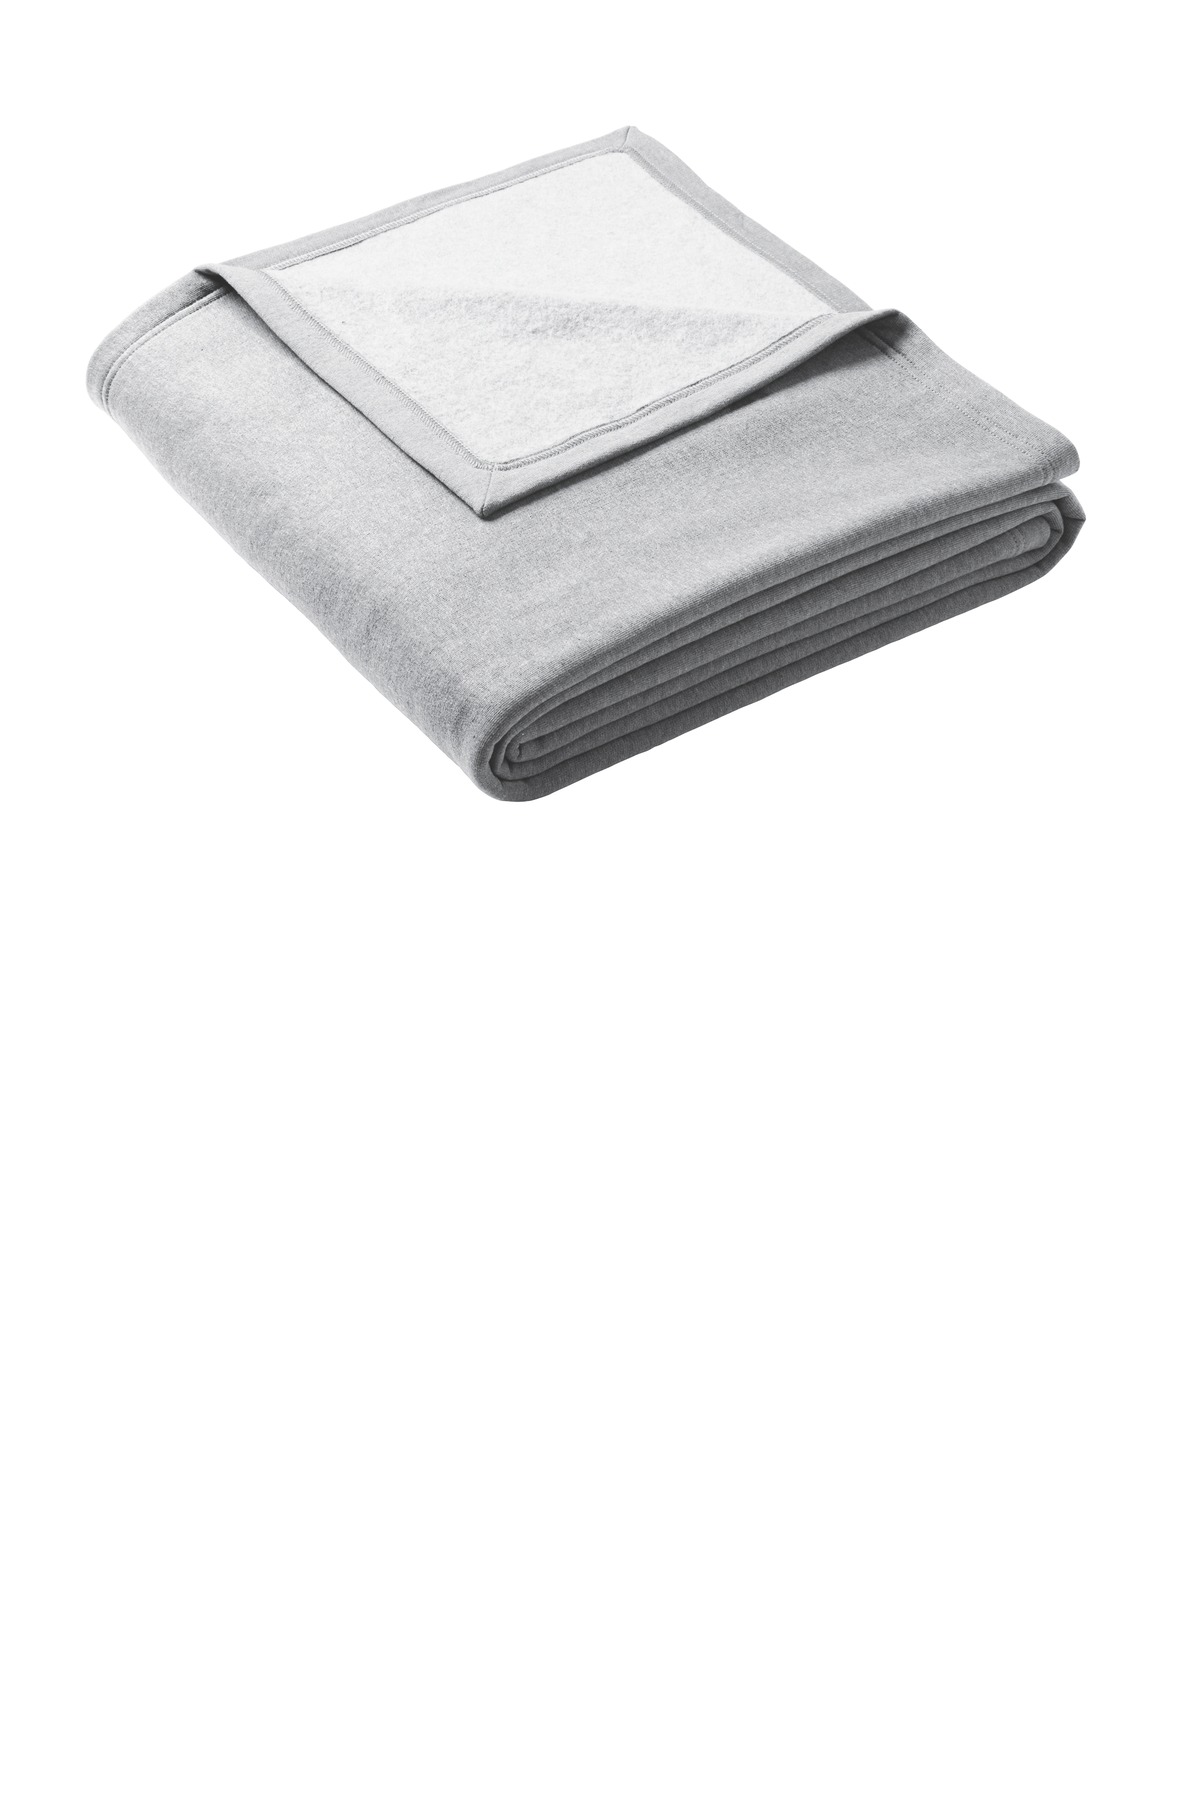 Port & Company ®  Oversized Core Fleece Sweatshirt Blanket BP79 - Athletic Heather